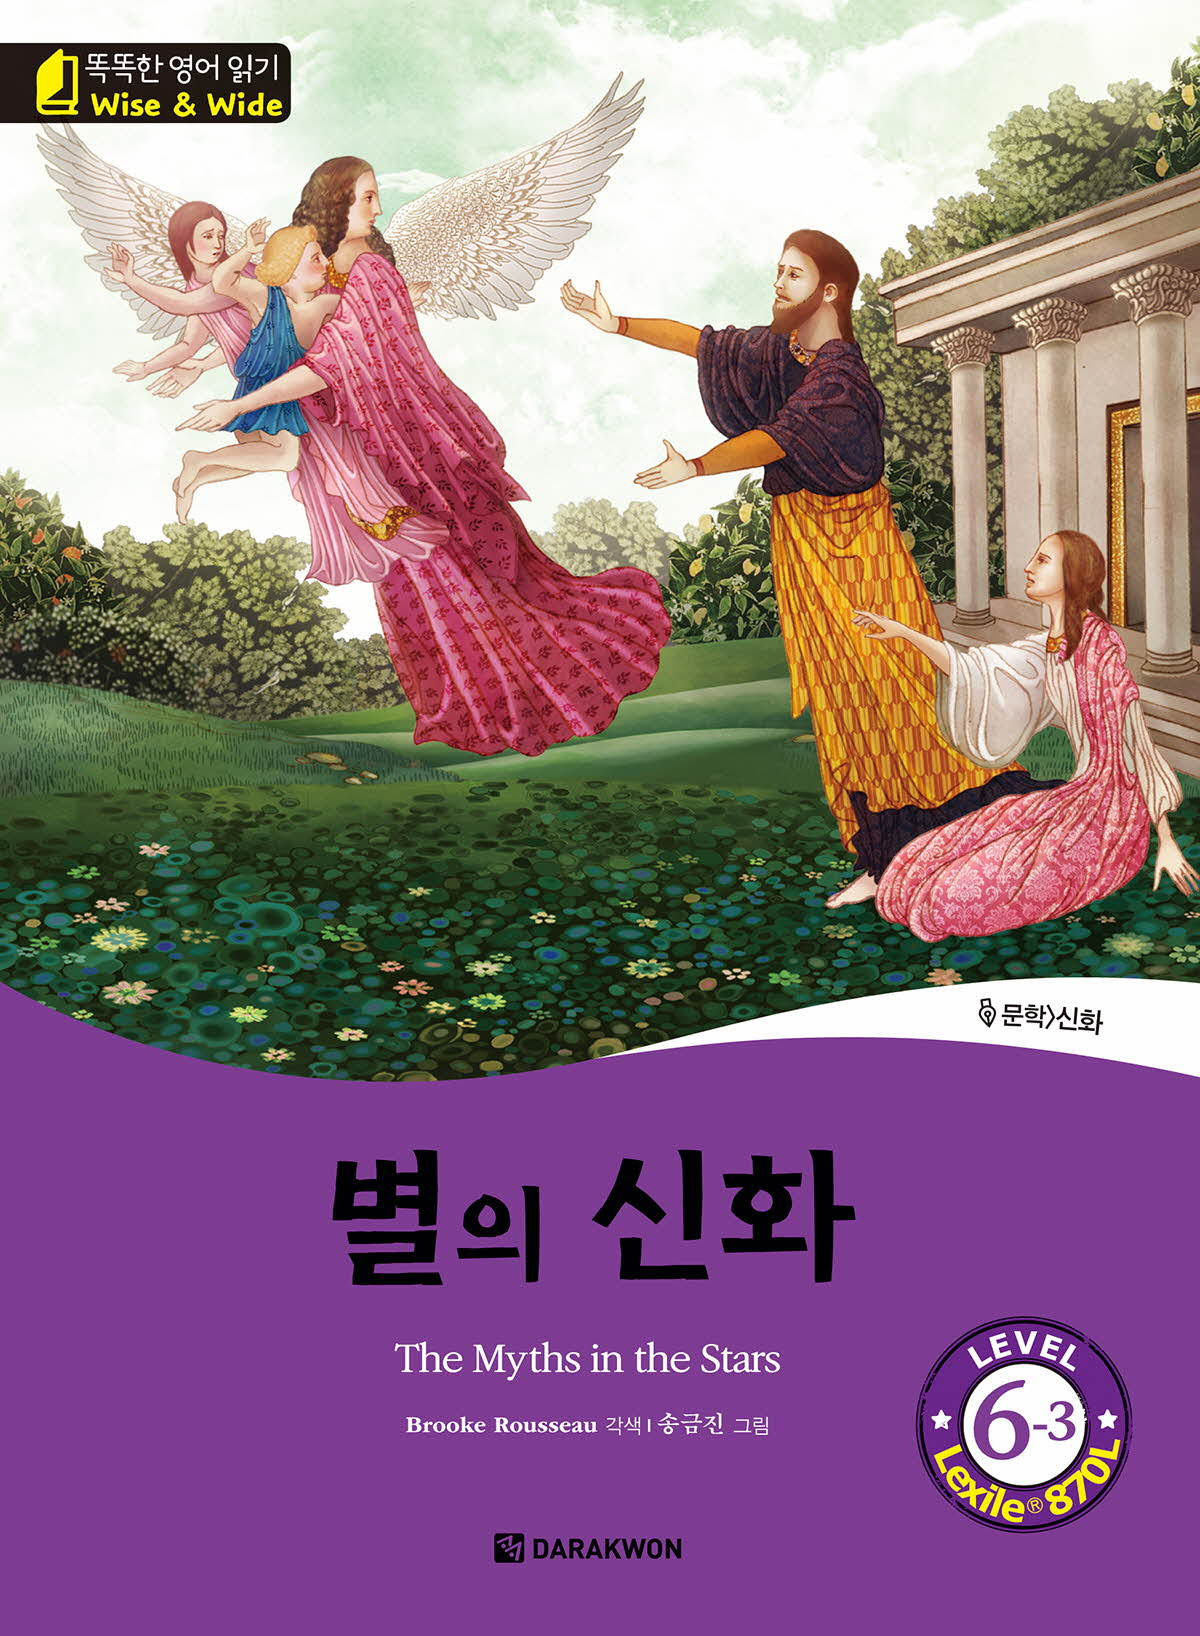 <a href='contents.php?CS_CODE=CS201803120053'>별의 신화 (The Myths in the Stars)</a> 책표지